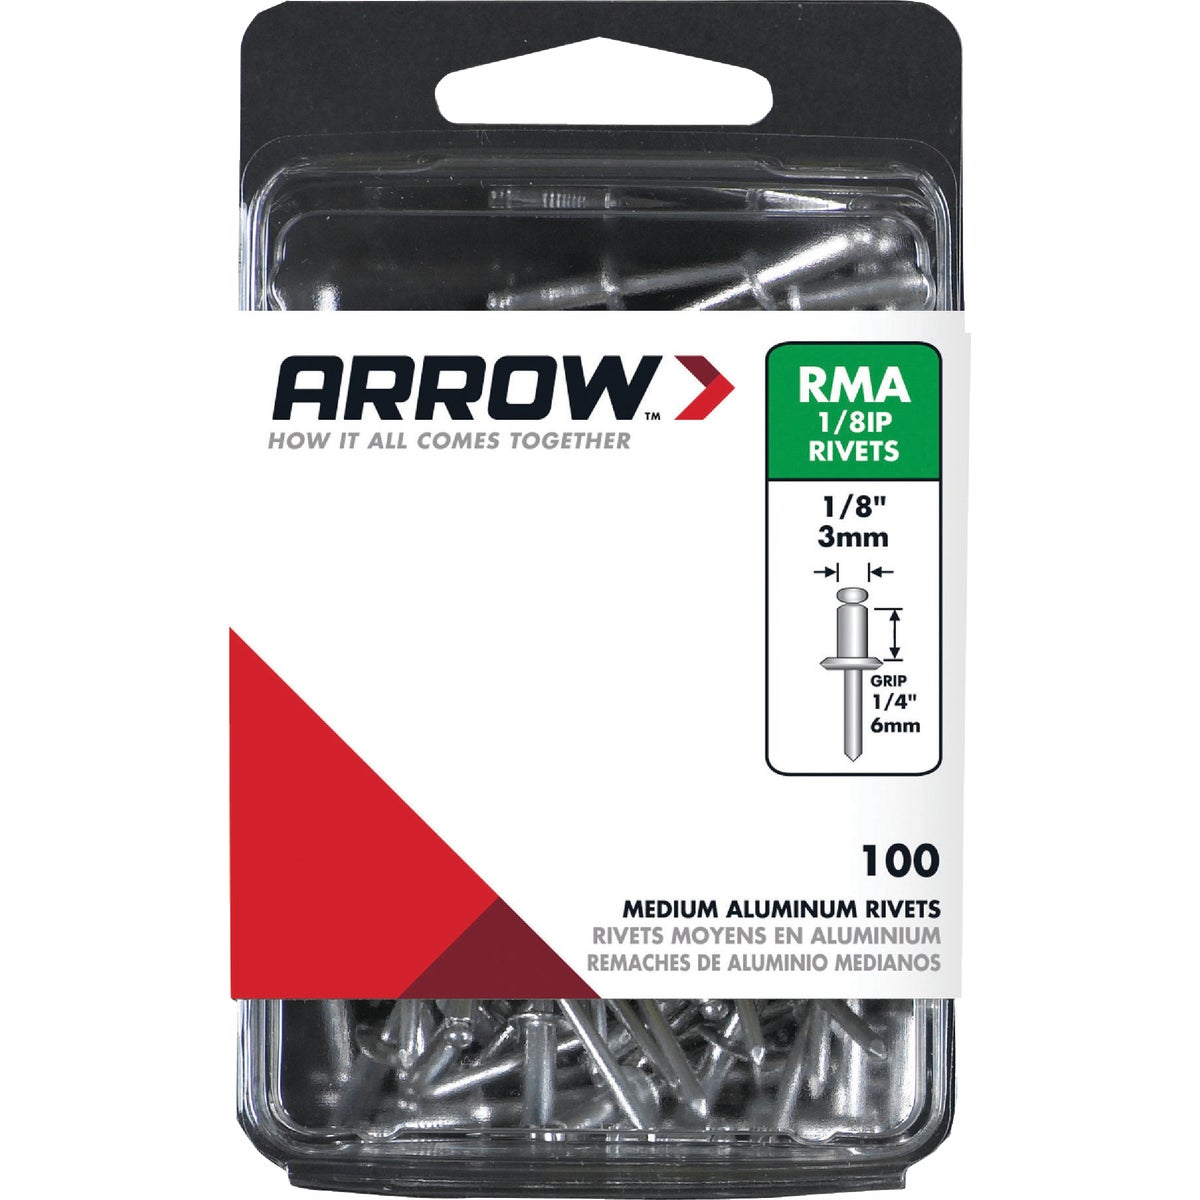 1/8X1/4 ALUM RIVET - RMA1/8IP by Arrow Fastener Co